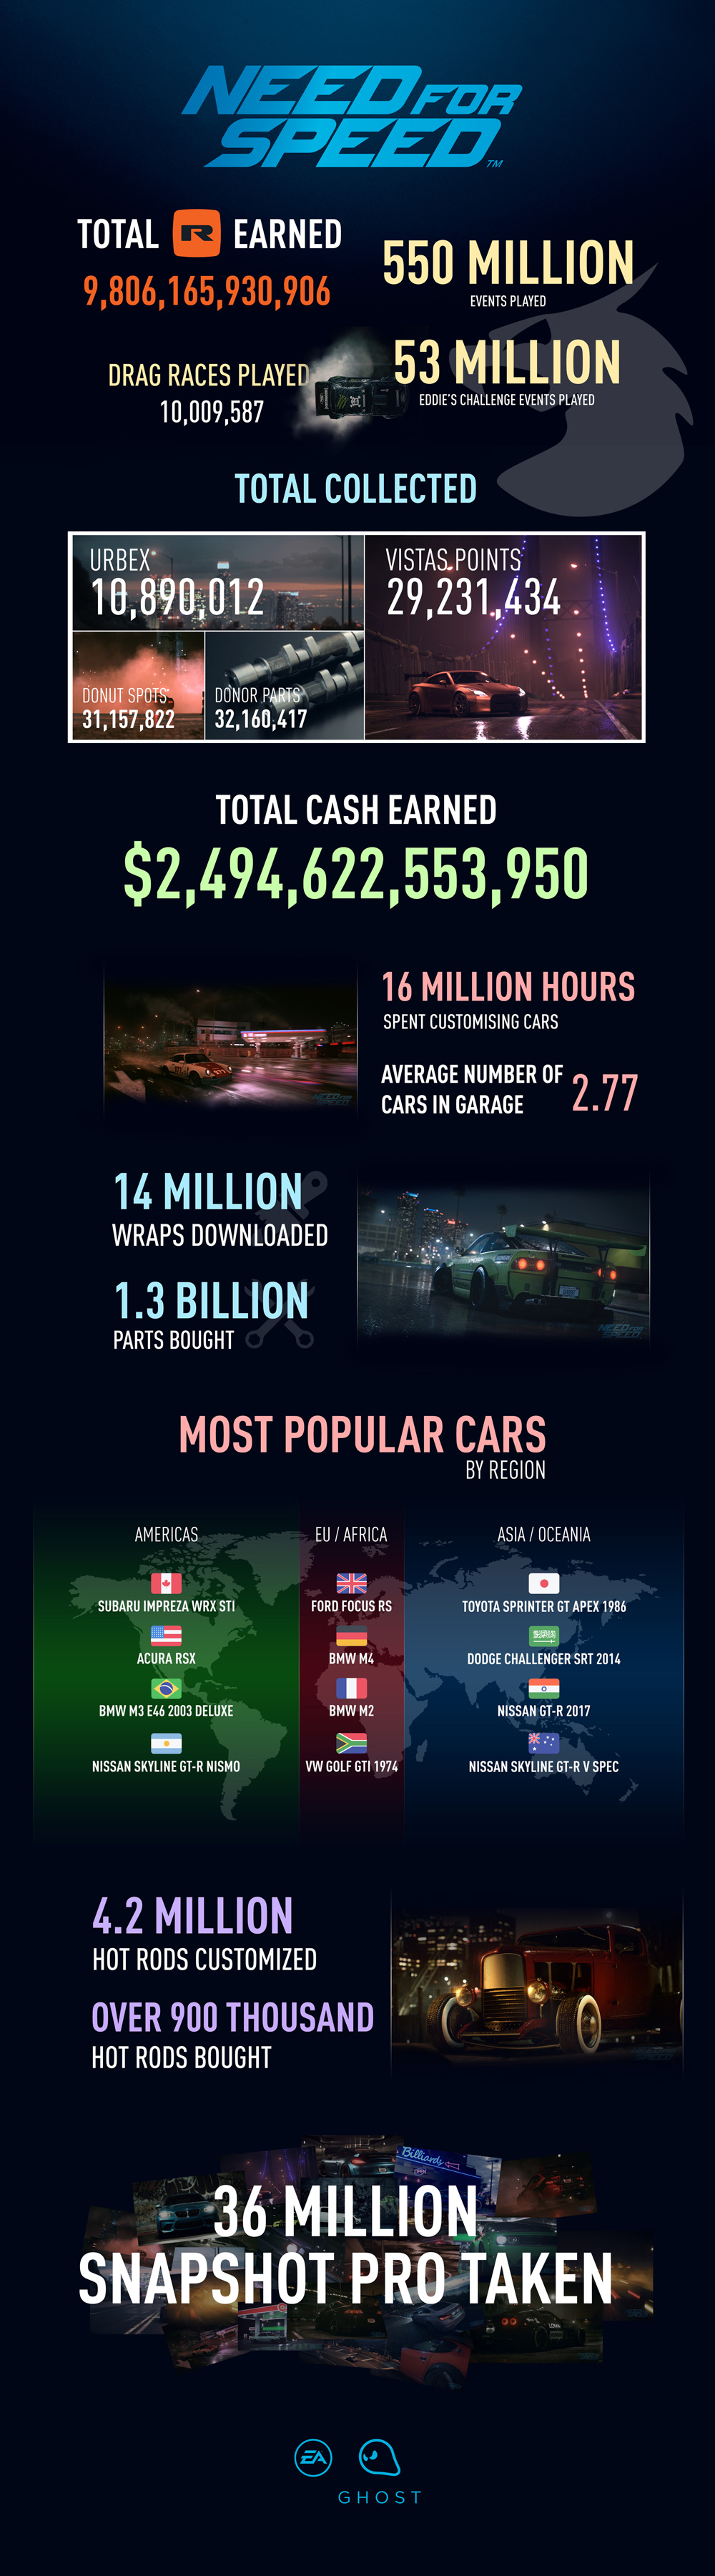 need_for_speed_infographic